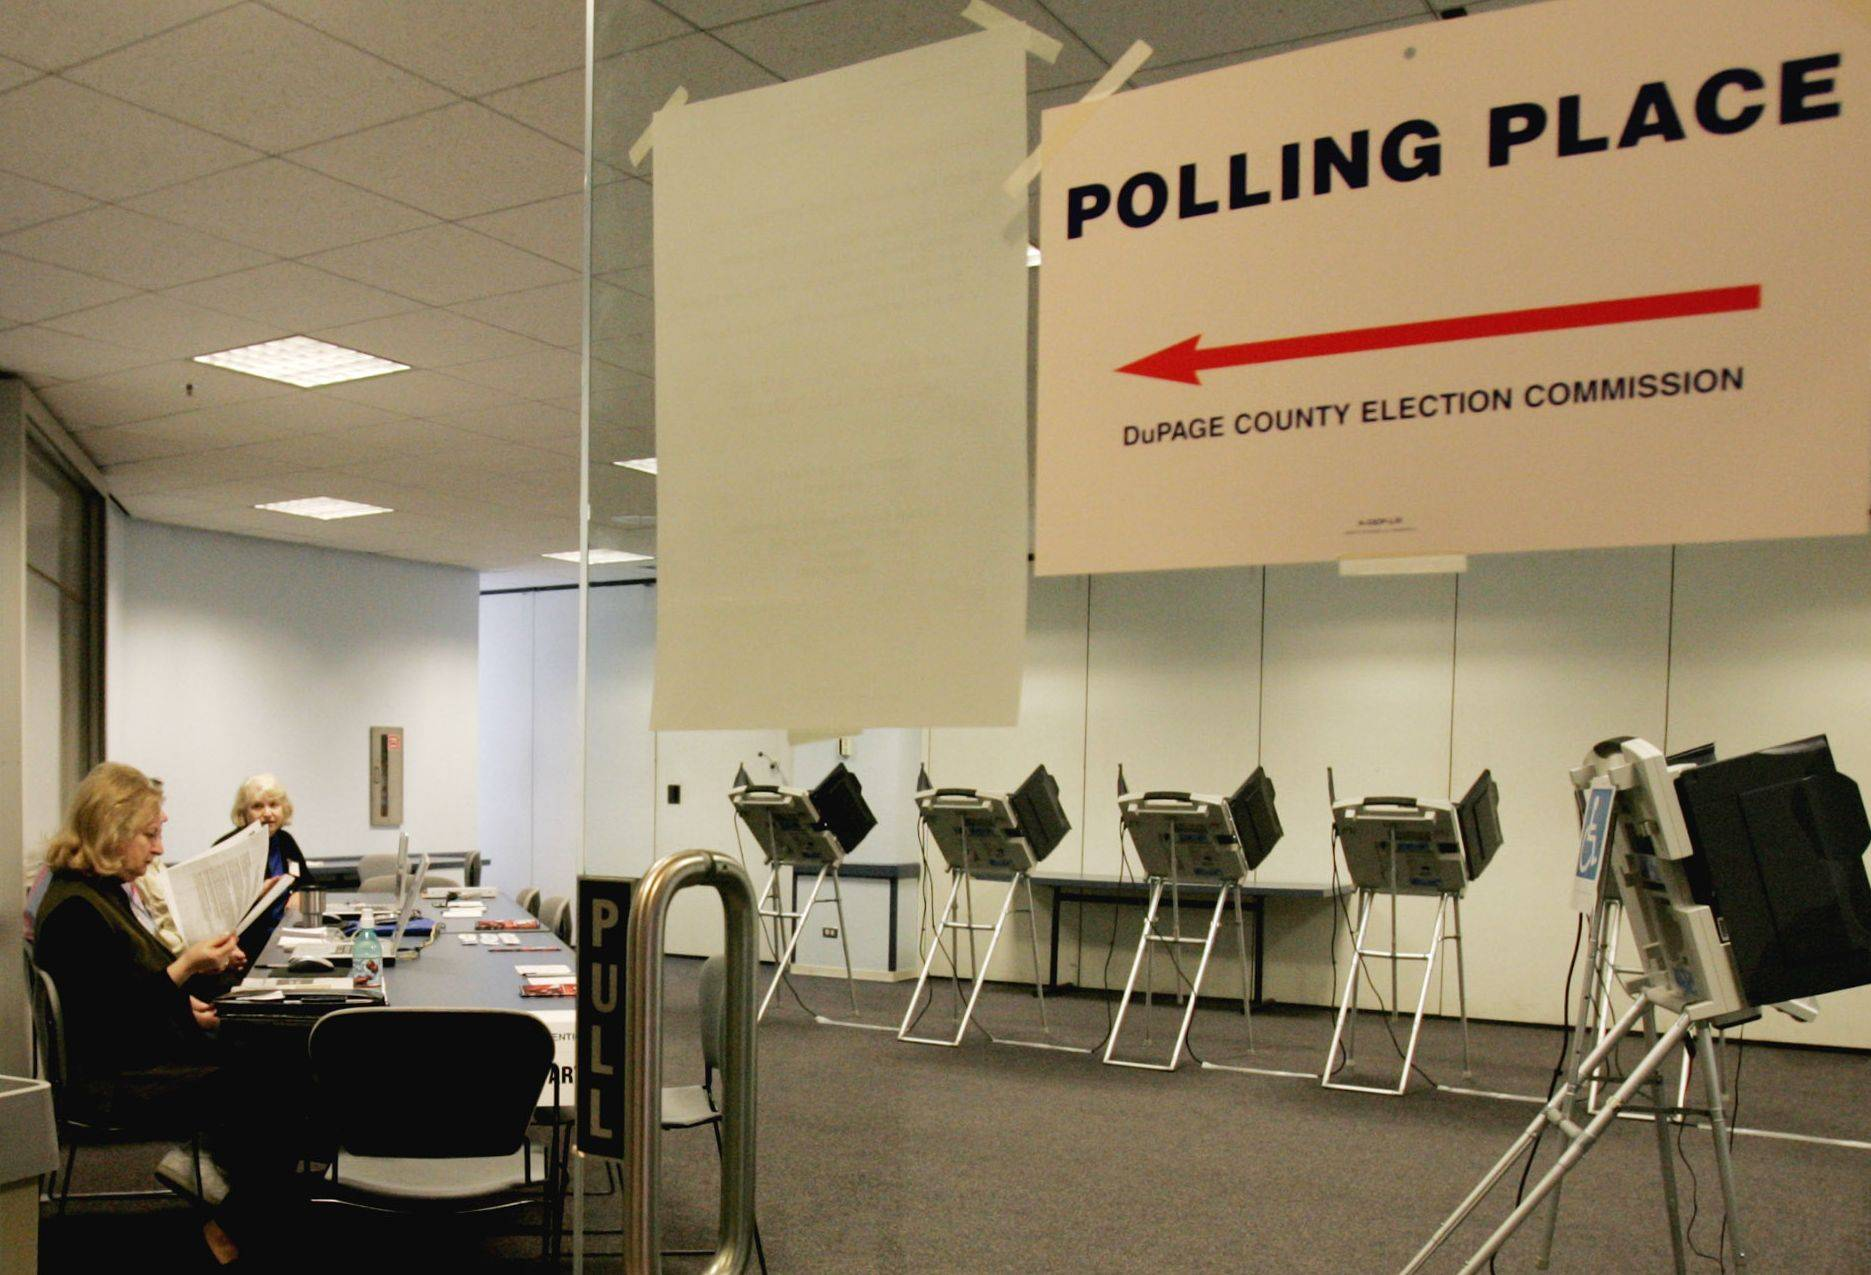 Slow days at early voting centers can cost taxpayers thousands of dollars, so some suburban election officials are s